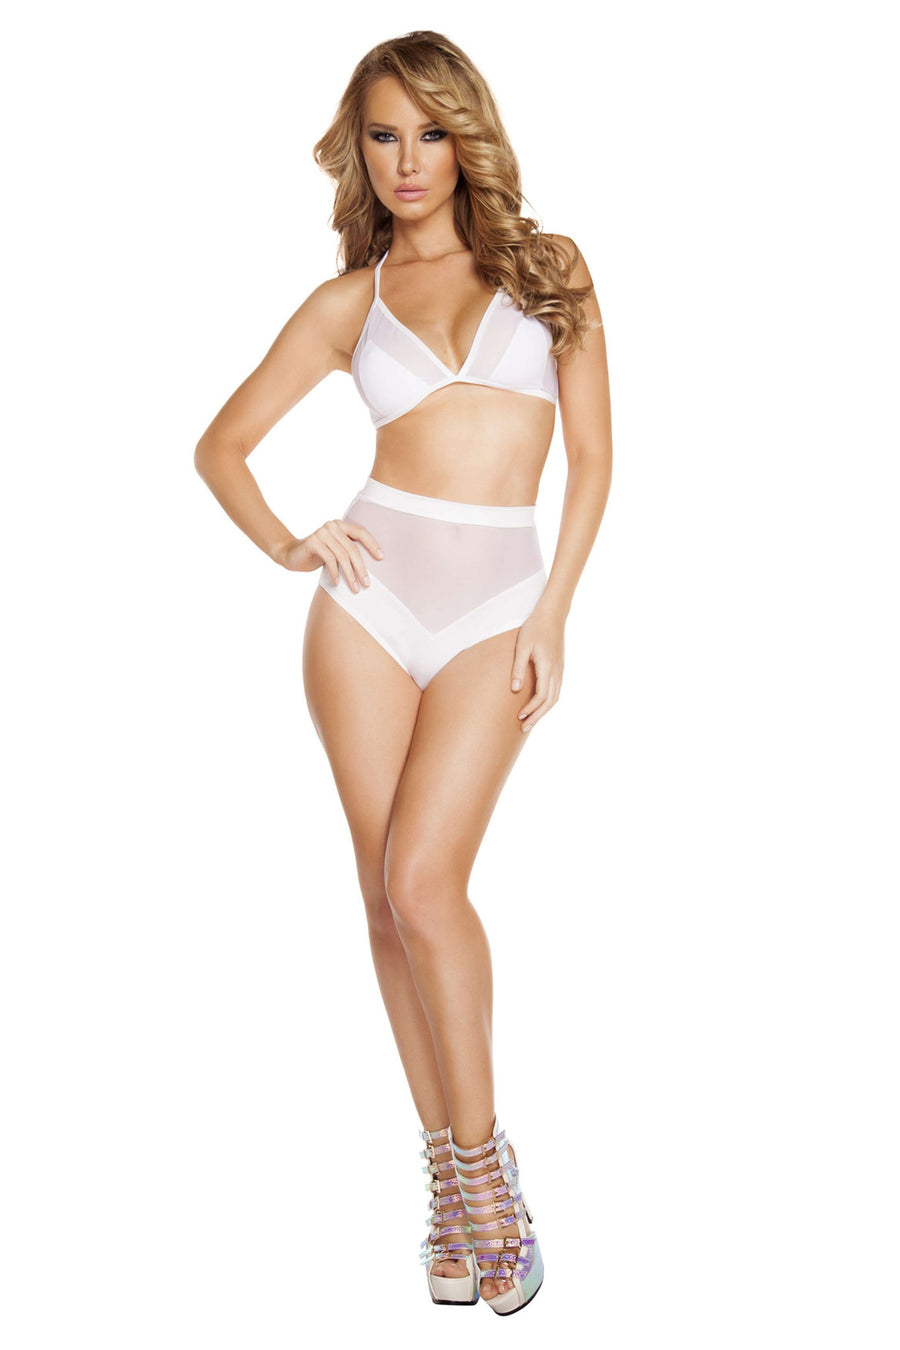 2pc Banded High-Waisted Sheer Shorts & Halter Top - White